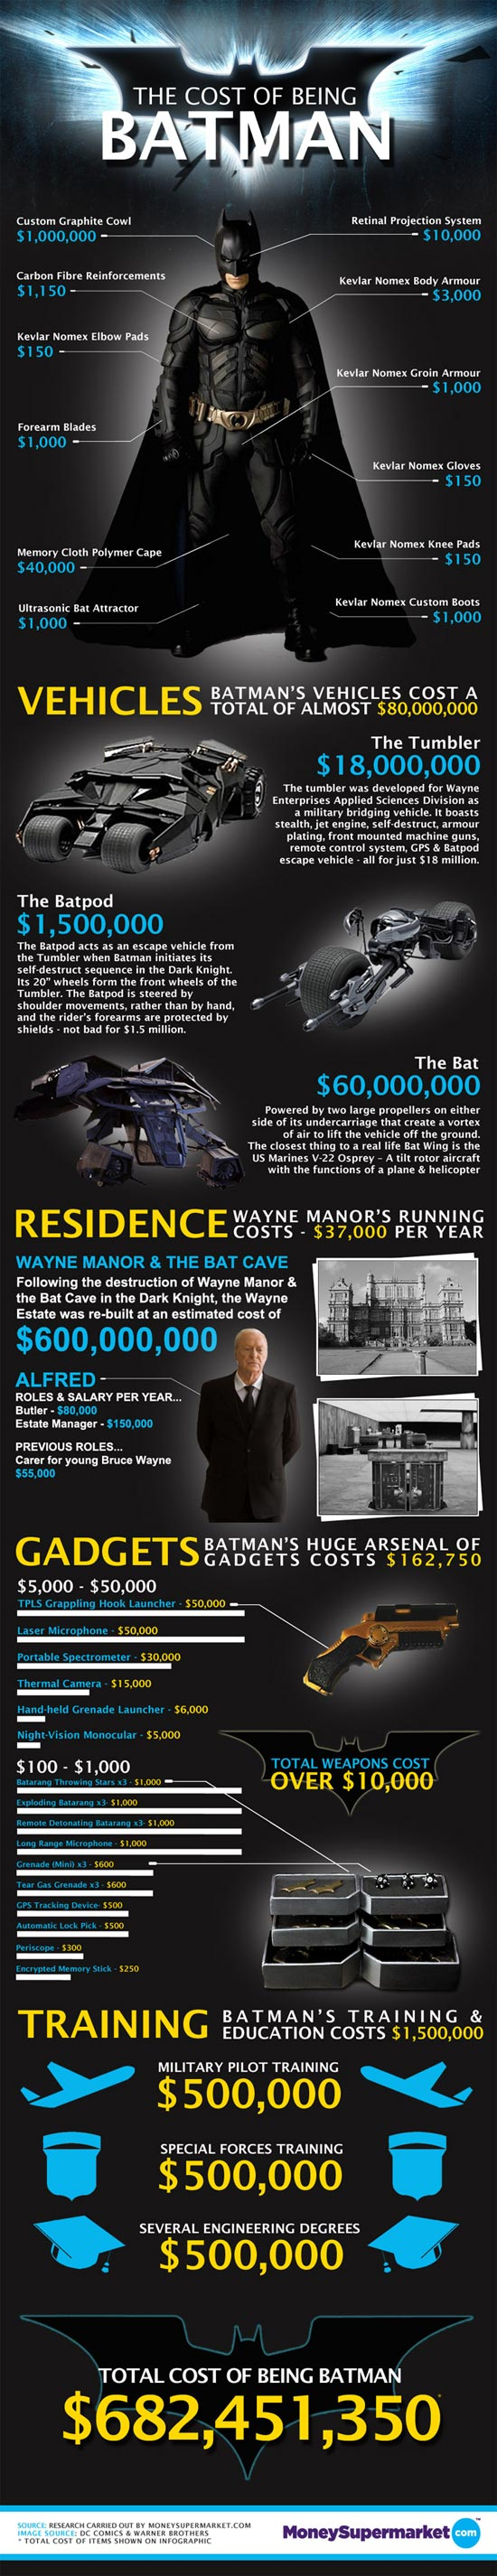 The-Cost-Of-Being-Batman-infographic